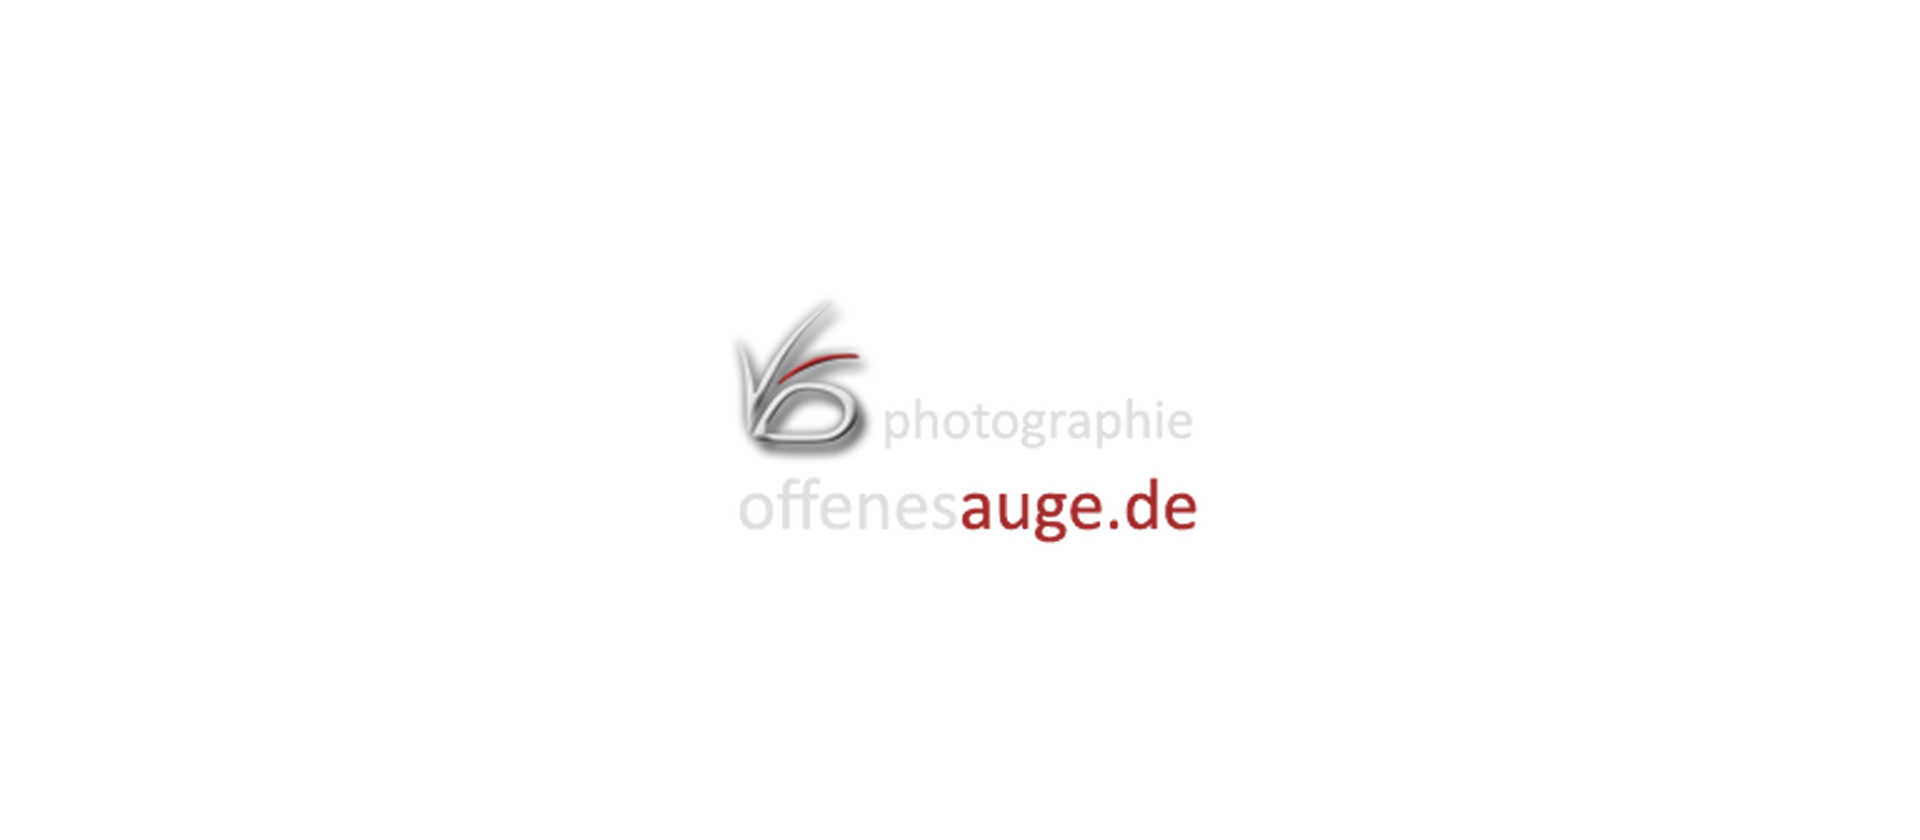 offenesauge-logo-compagnon